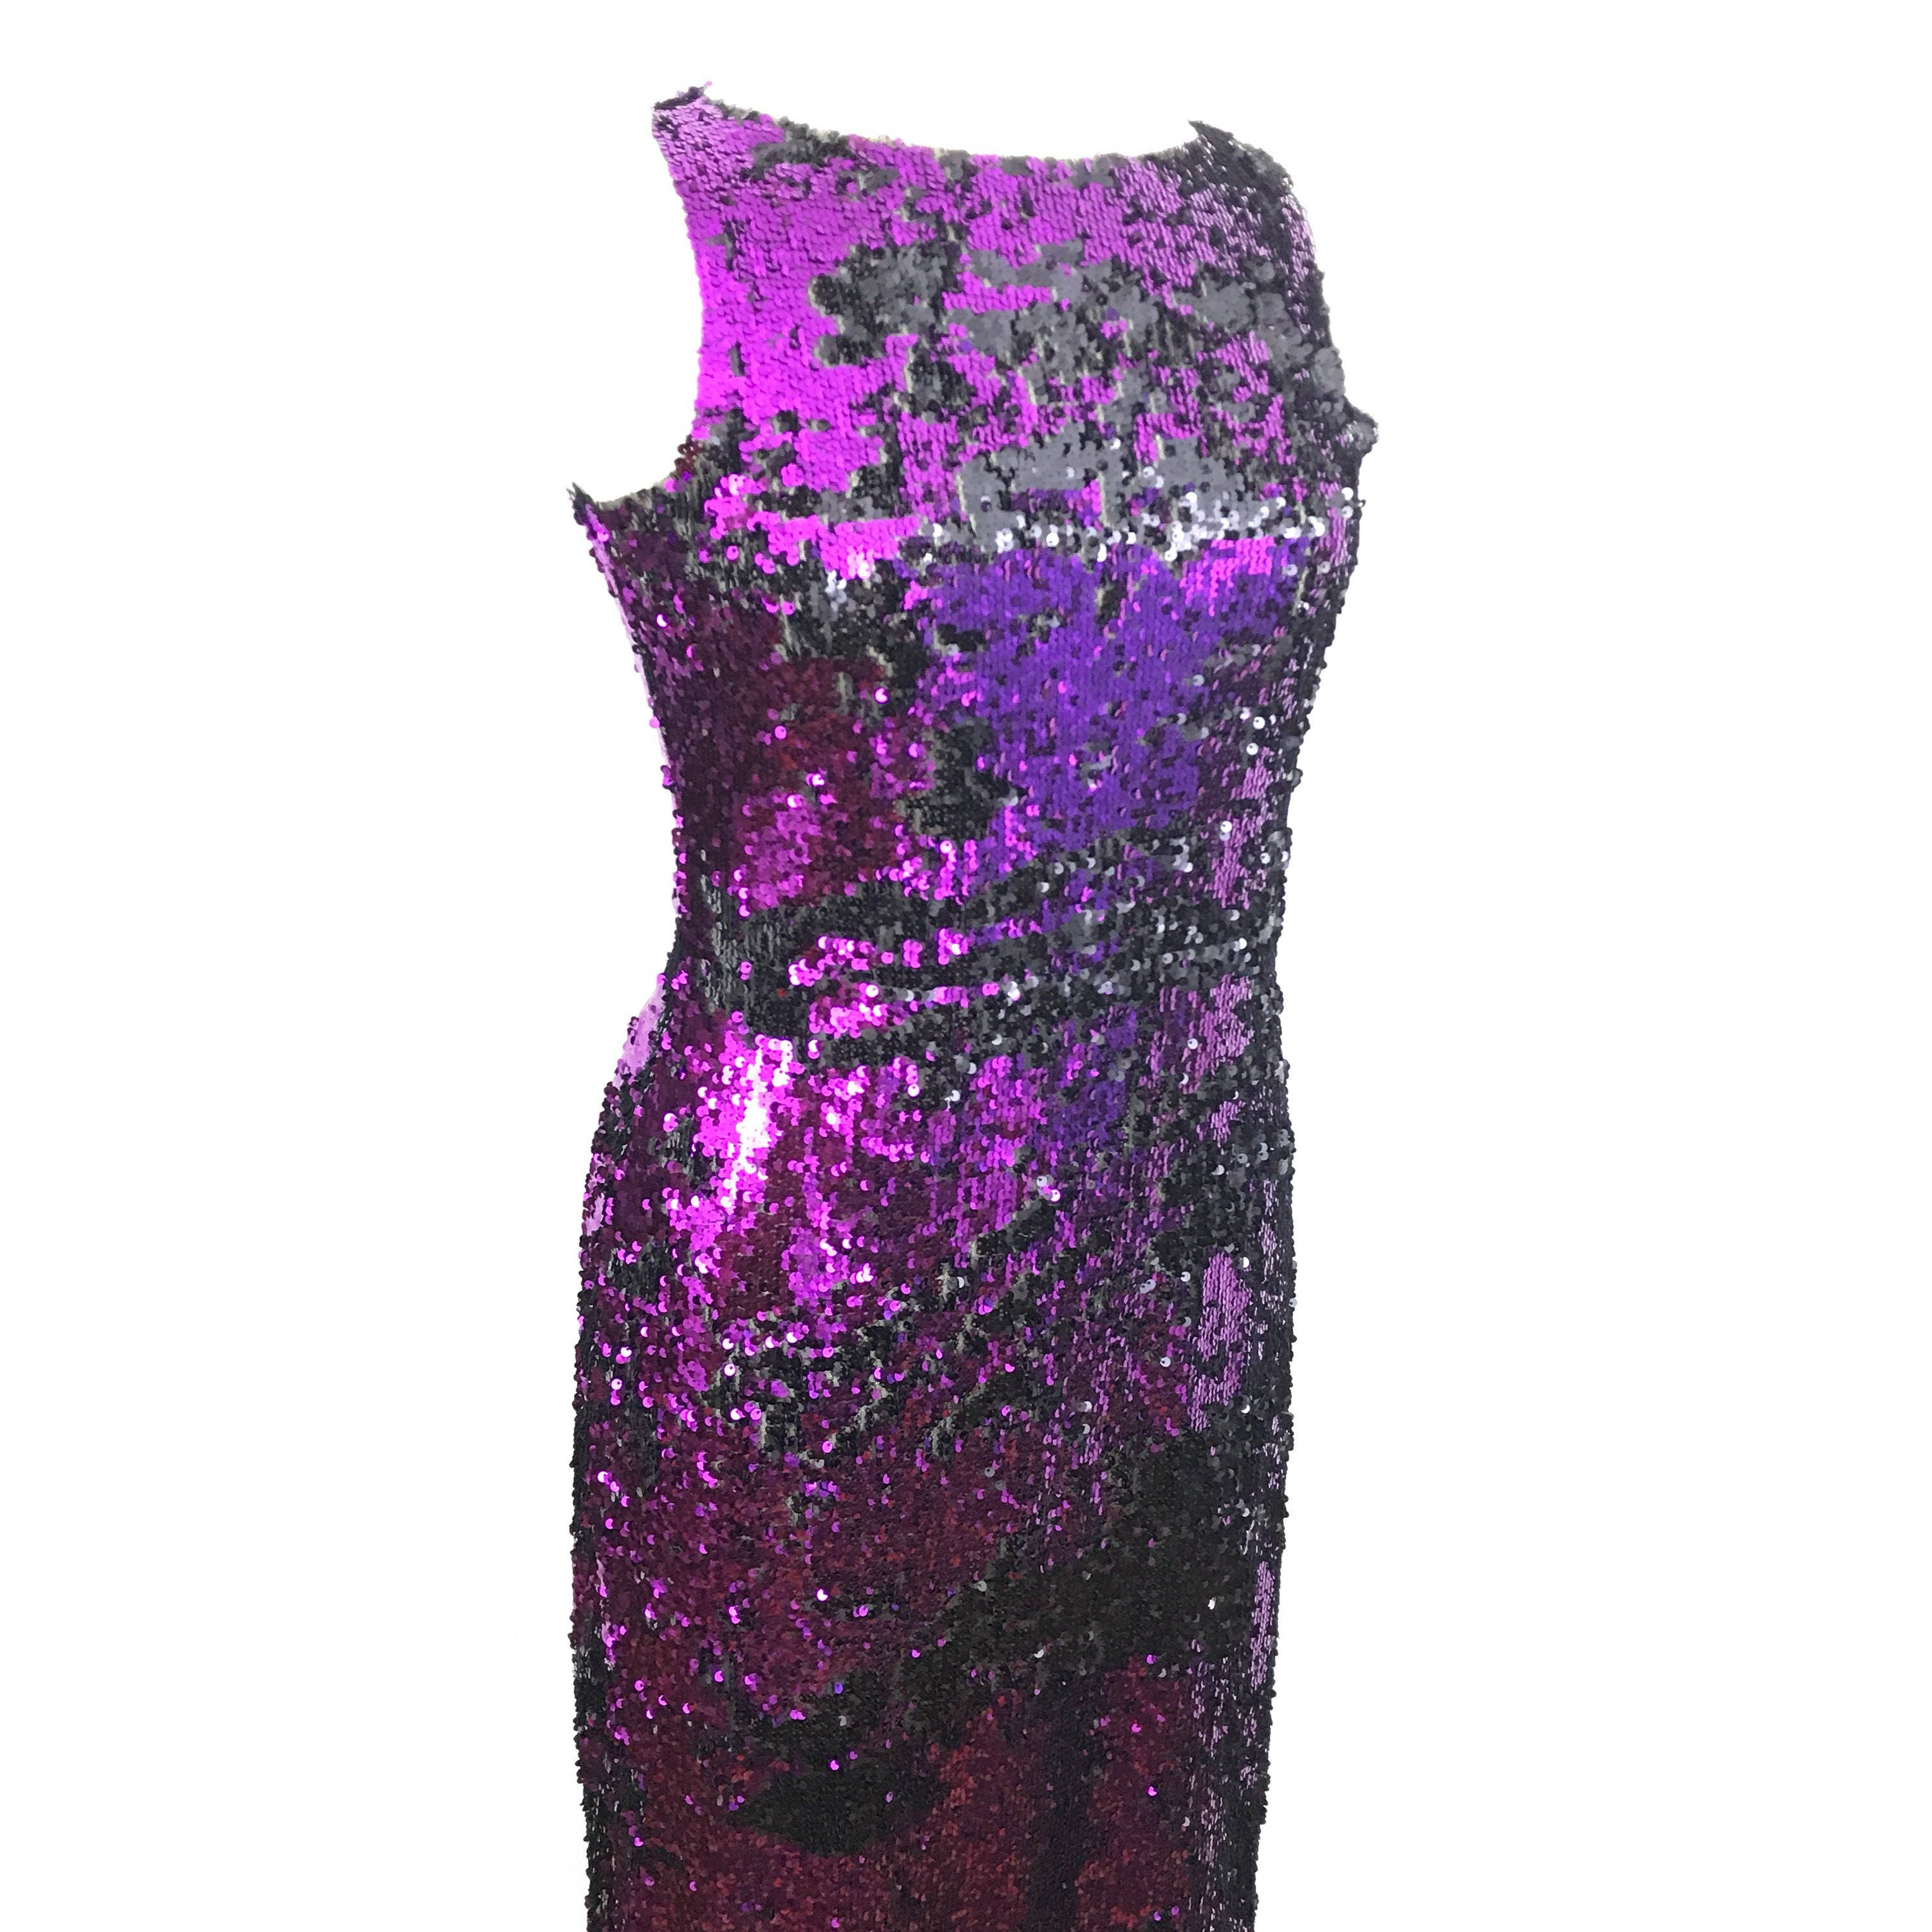 45105cae vintage sequin dress purple black evening gown bombshell style ...